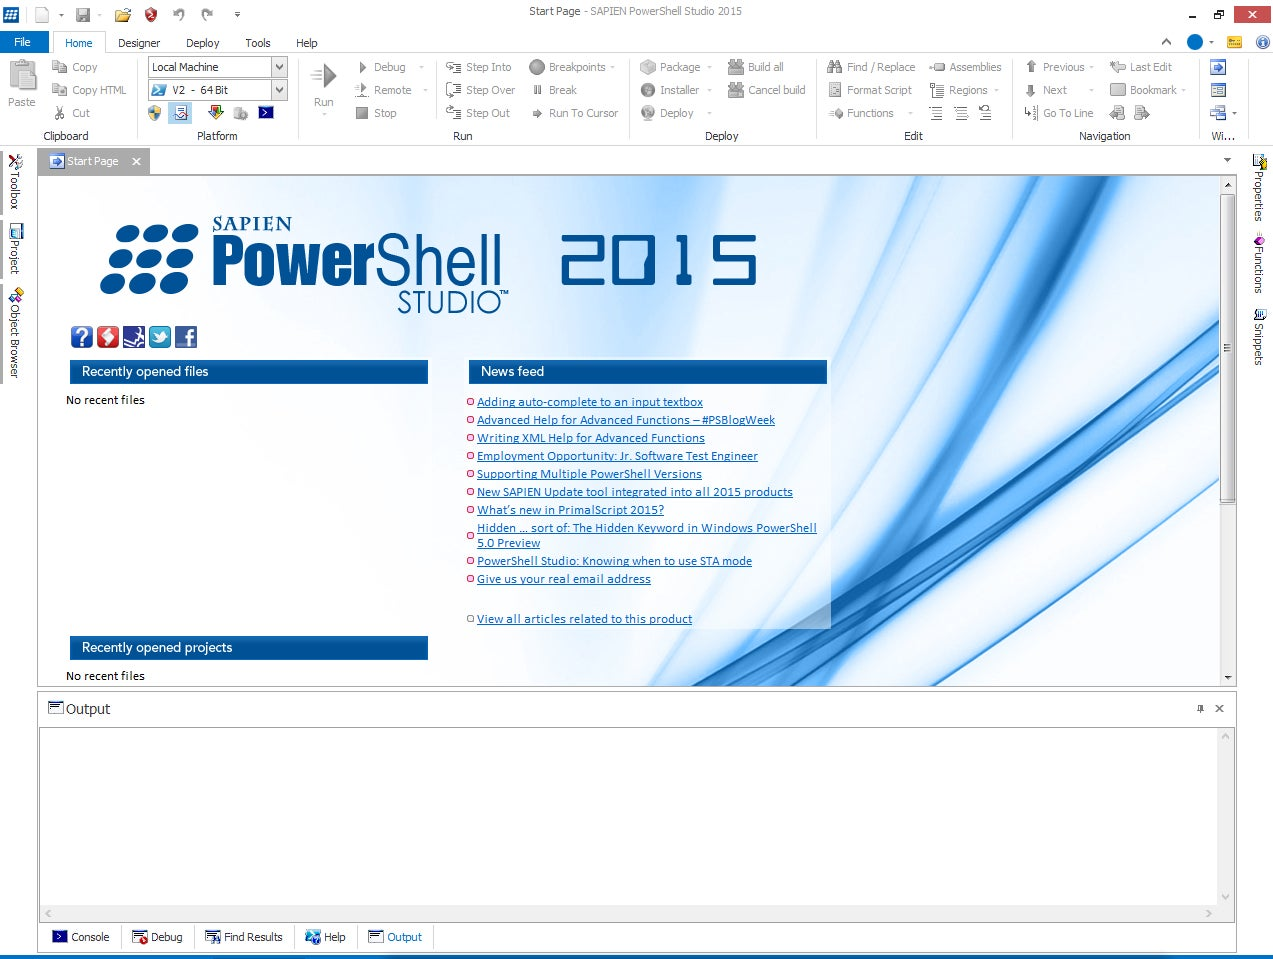 9 useful PowerShell tools | Computerworld